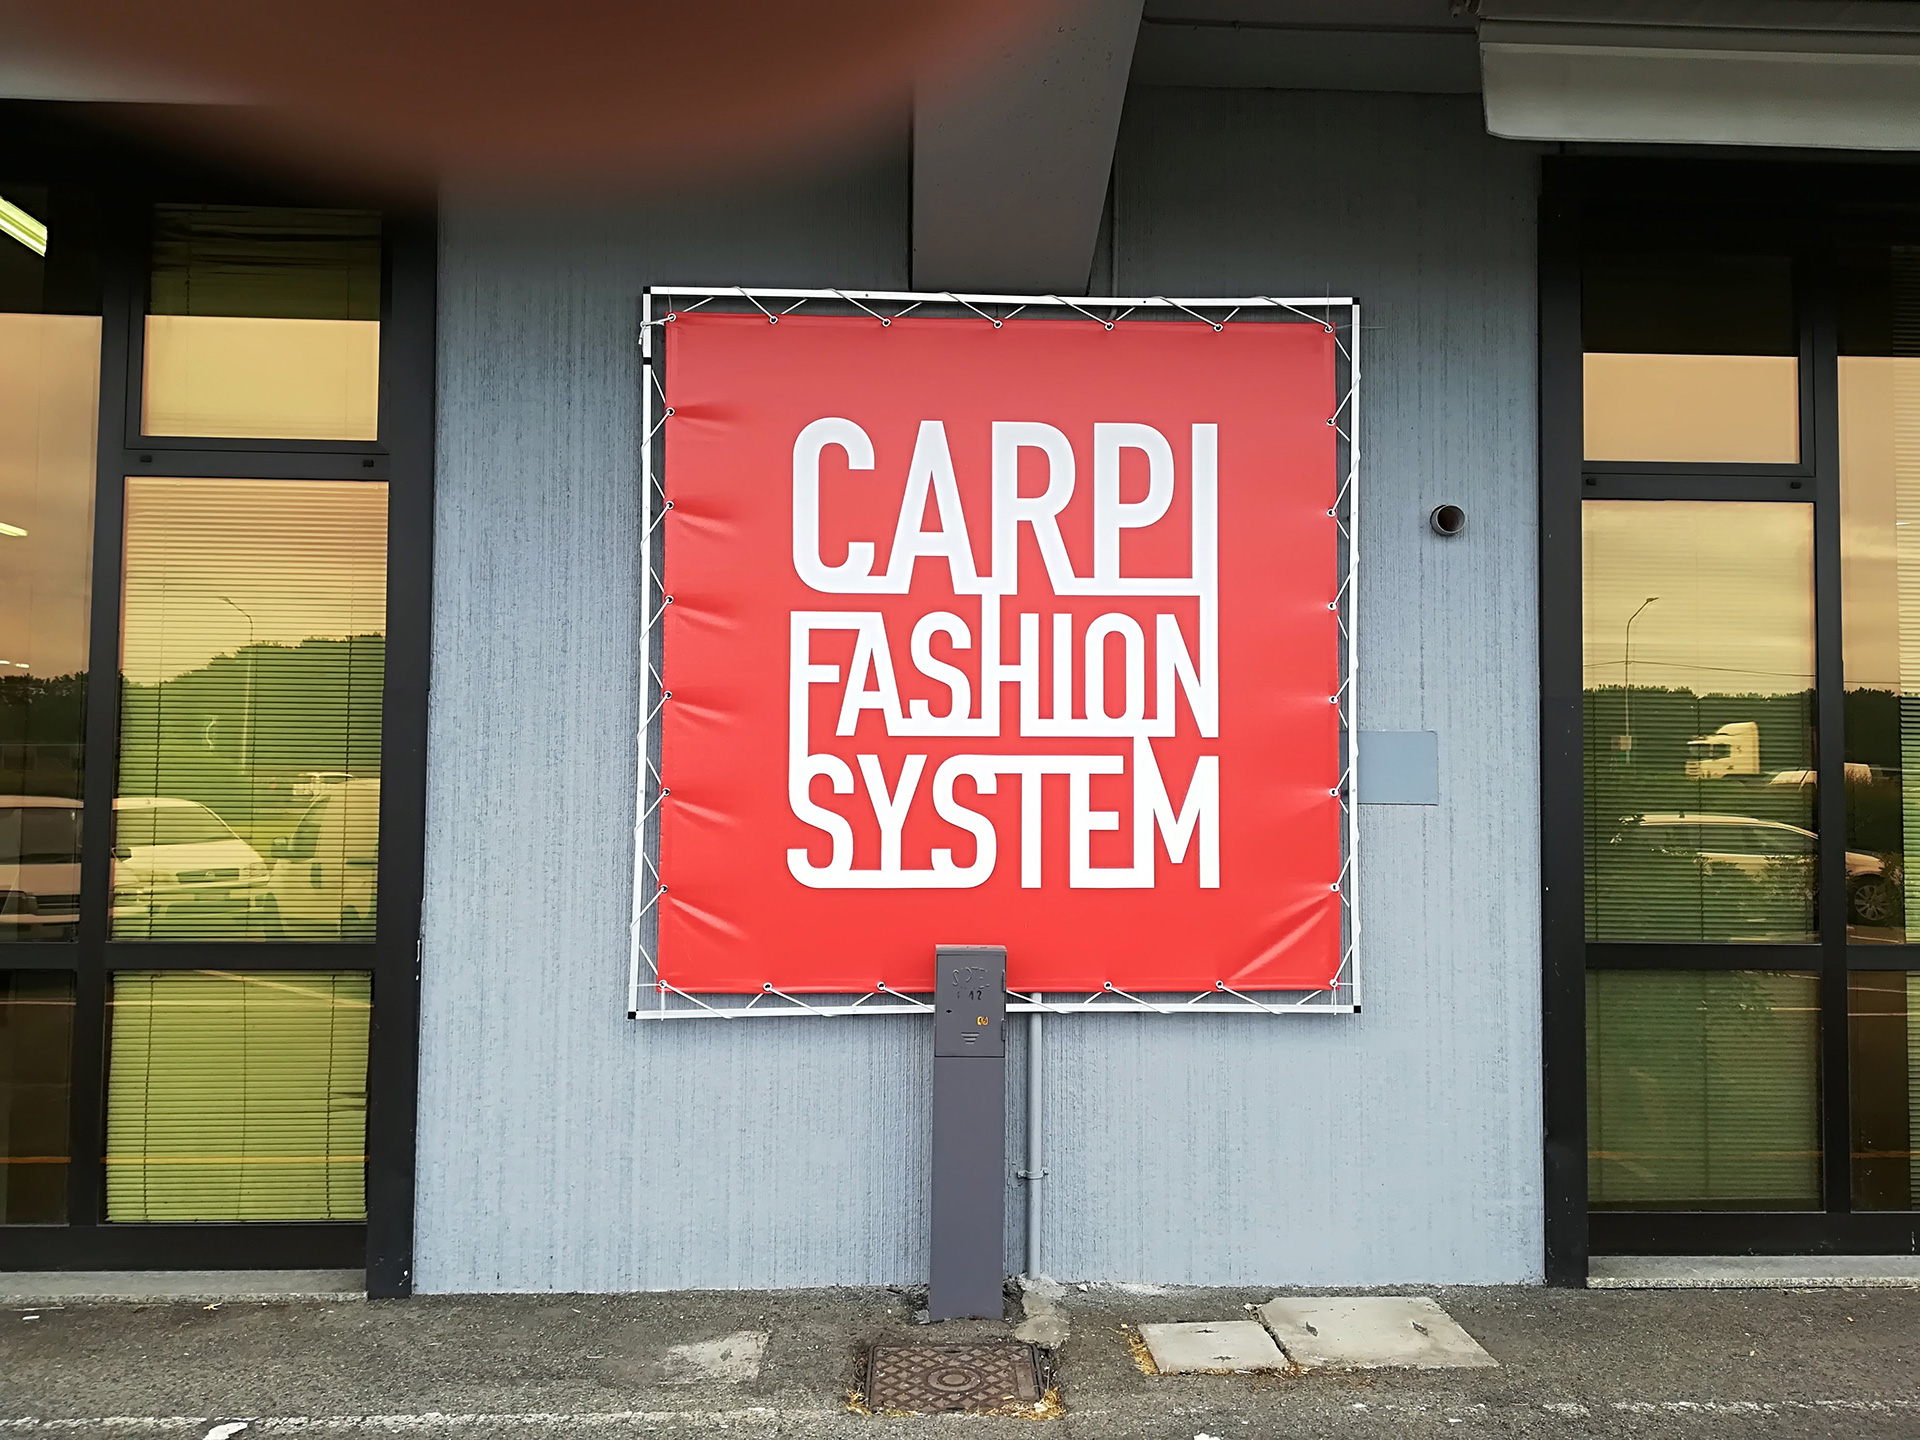 Cartellonistica Carpi Fashion System Cartello Sericart2